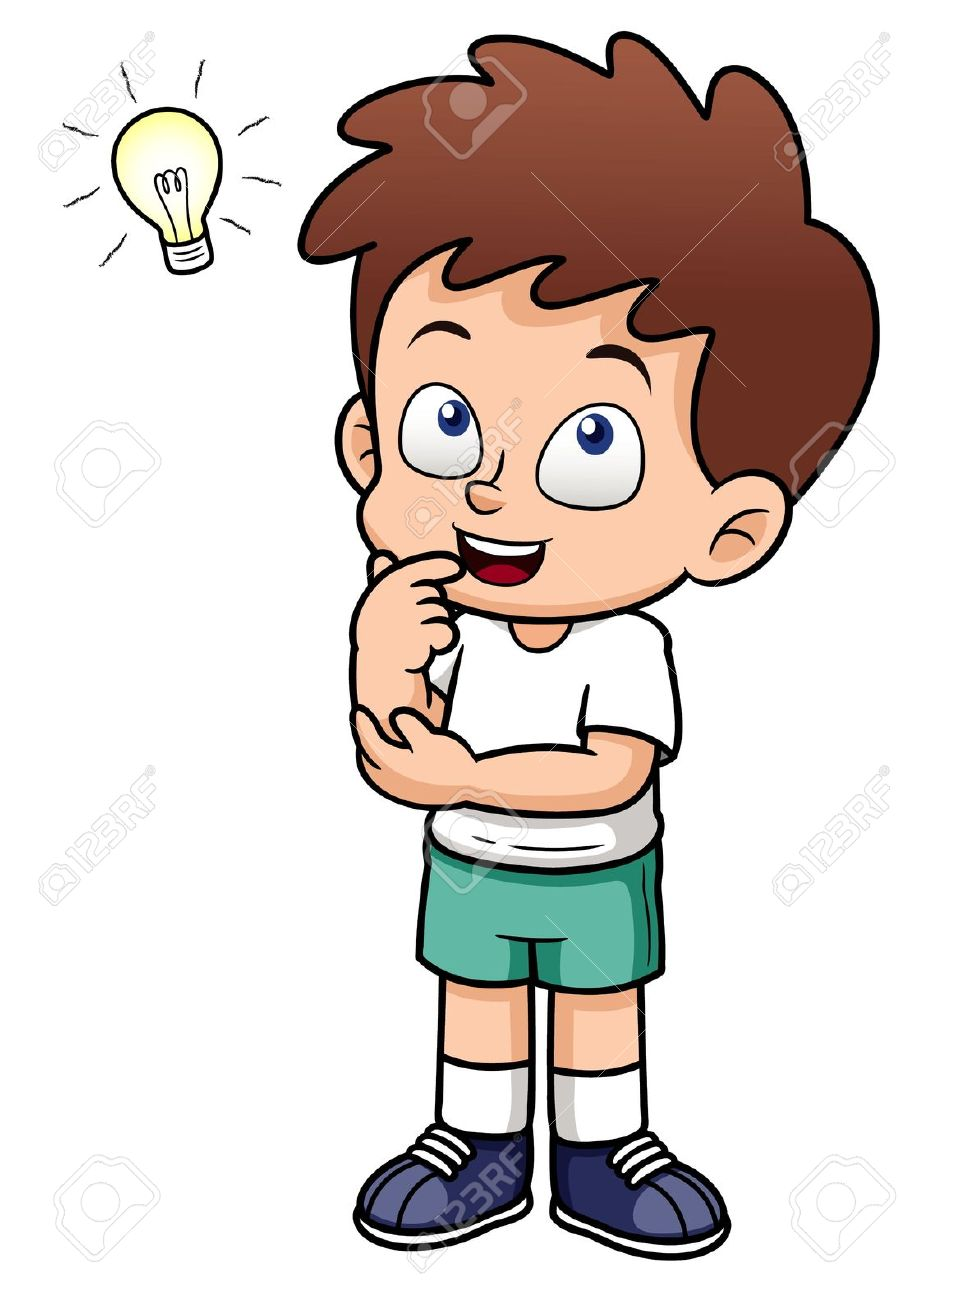 medium resolution of child thinking clipart 14285 boy thinking clipart